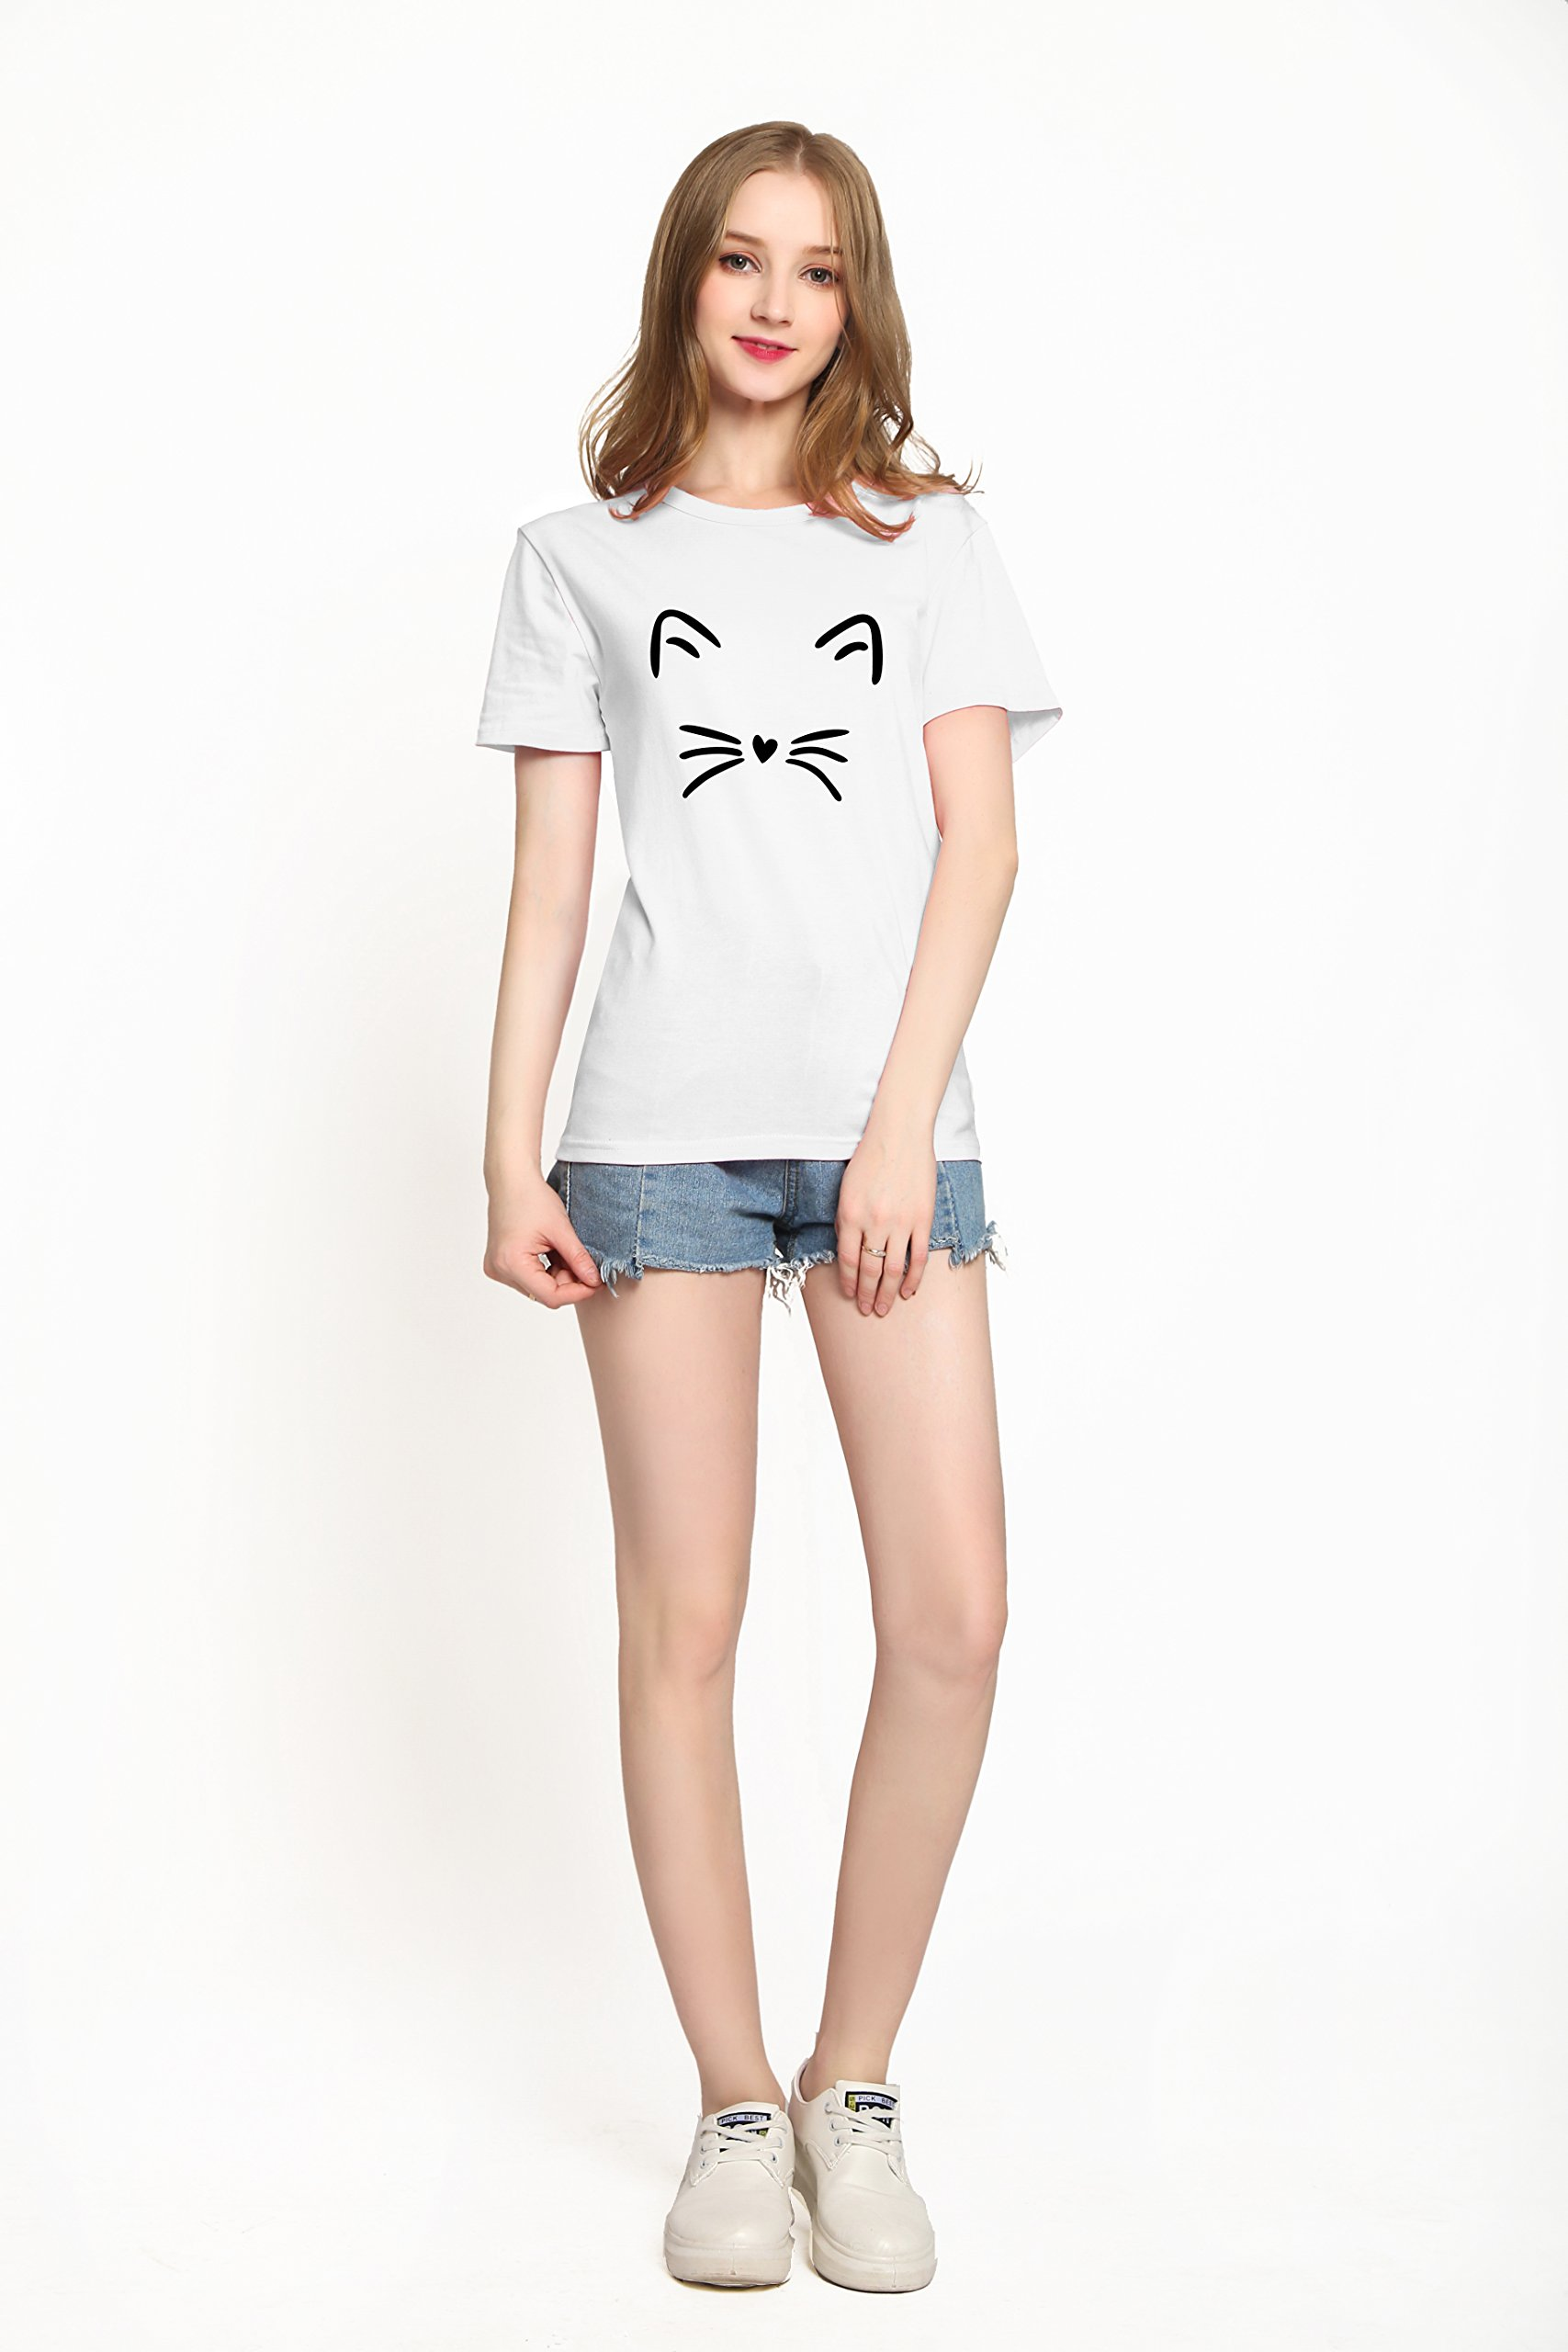 PINJIA Womens Cotton Letter Printed Pullover Tshirts Top Tees(MX15)(XXXL, White Cat)